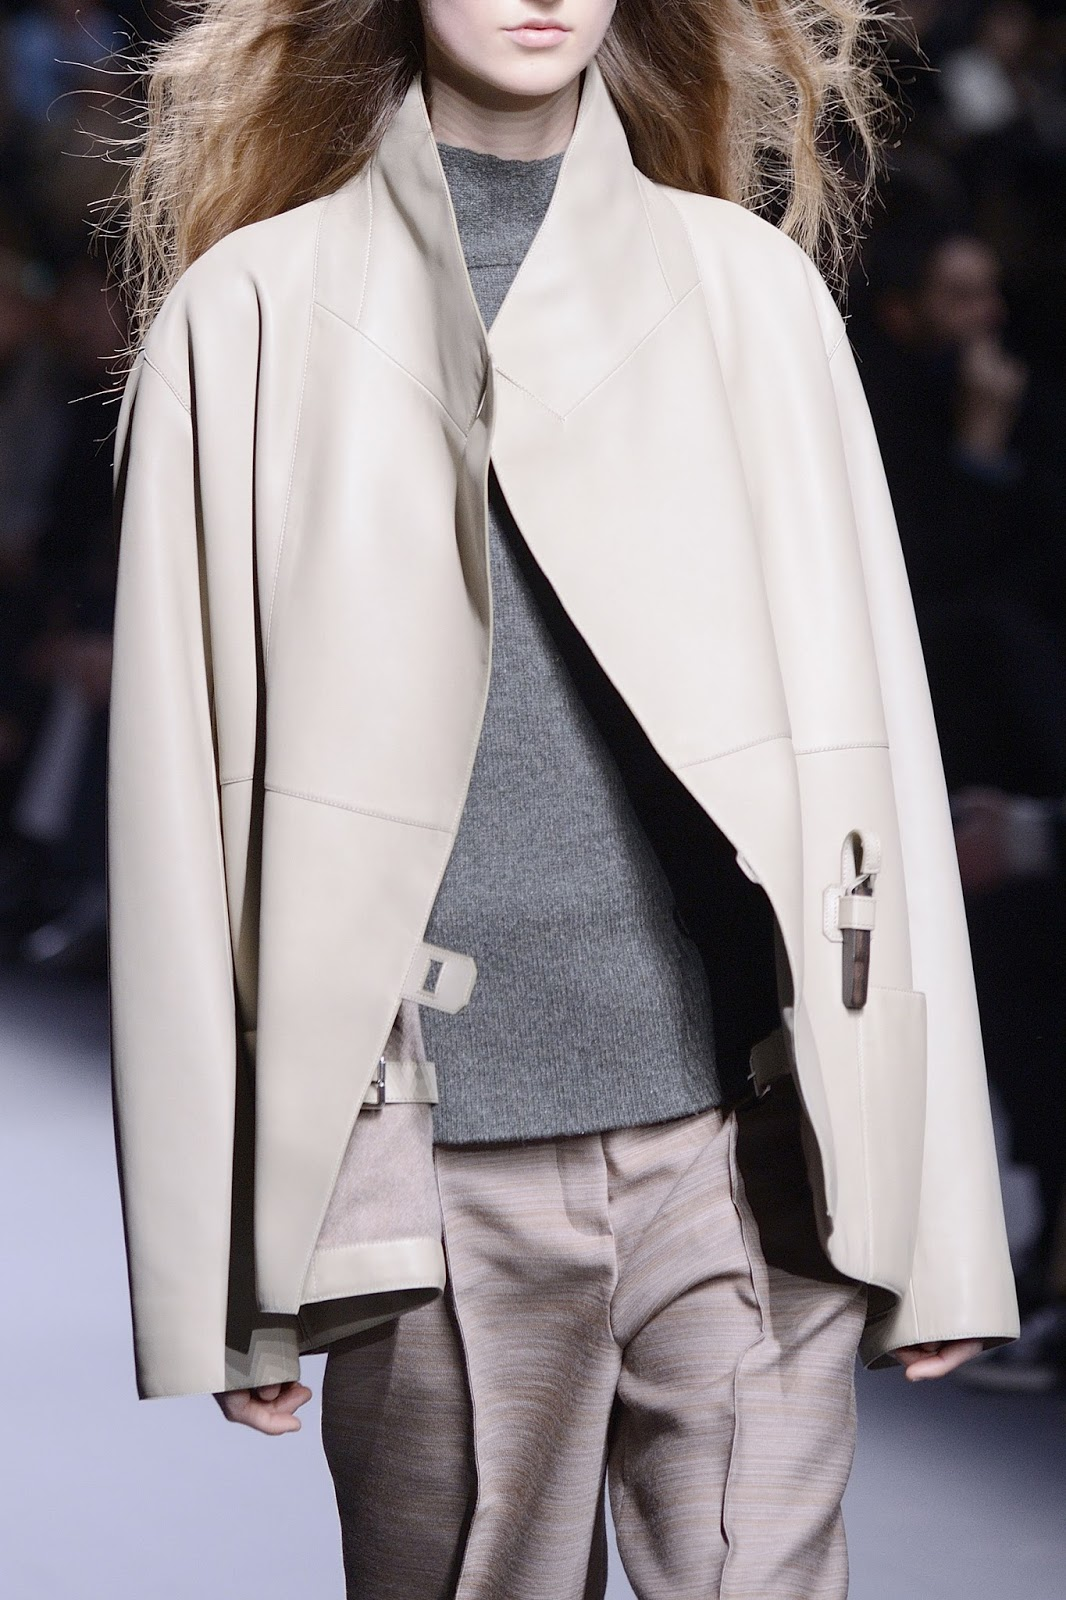 Review, runway looks and details of Hermes Fall/Winter 2016 collection from Paris fashion week via www.fashionedbylove.co.uk British fashion blog